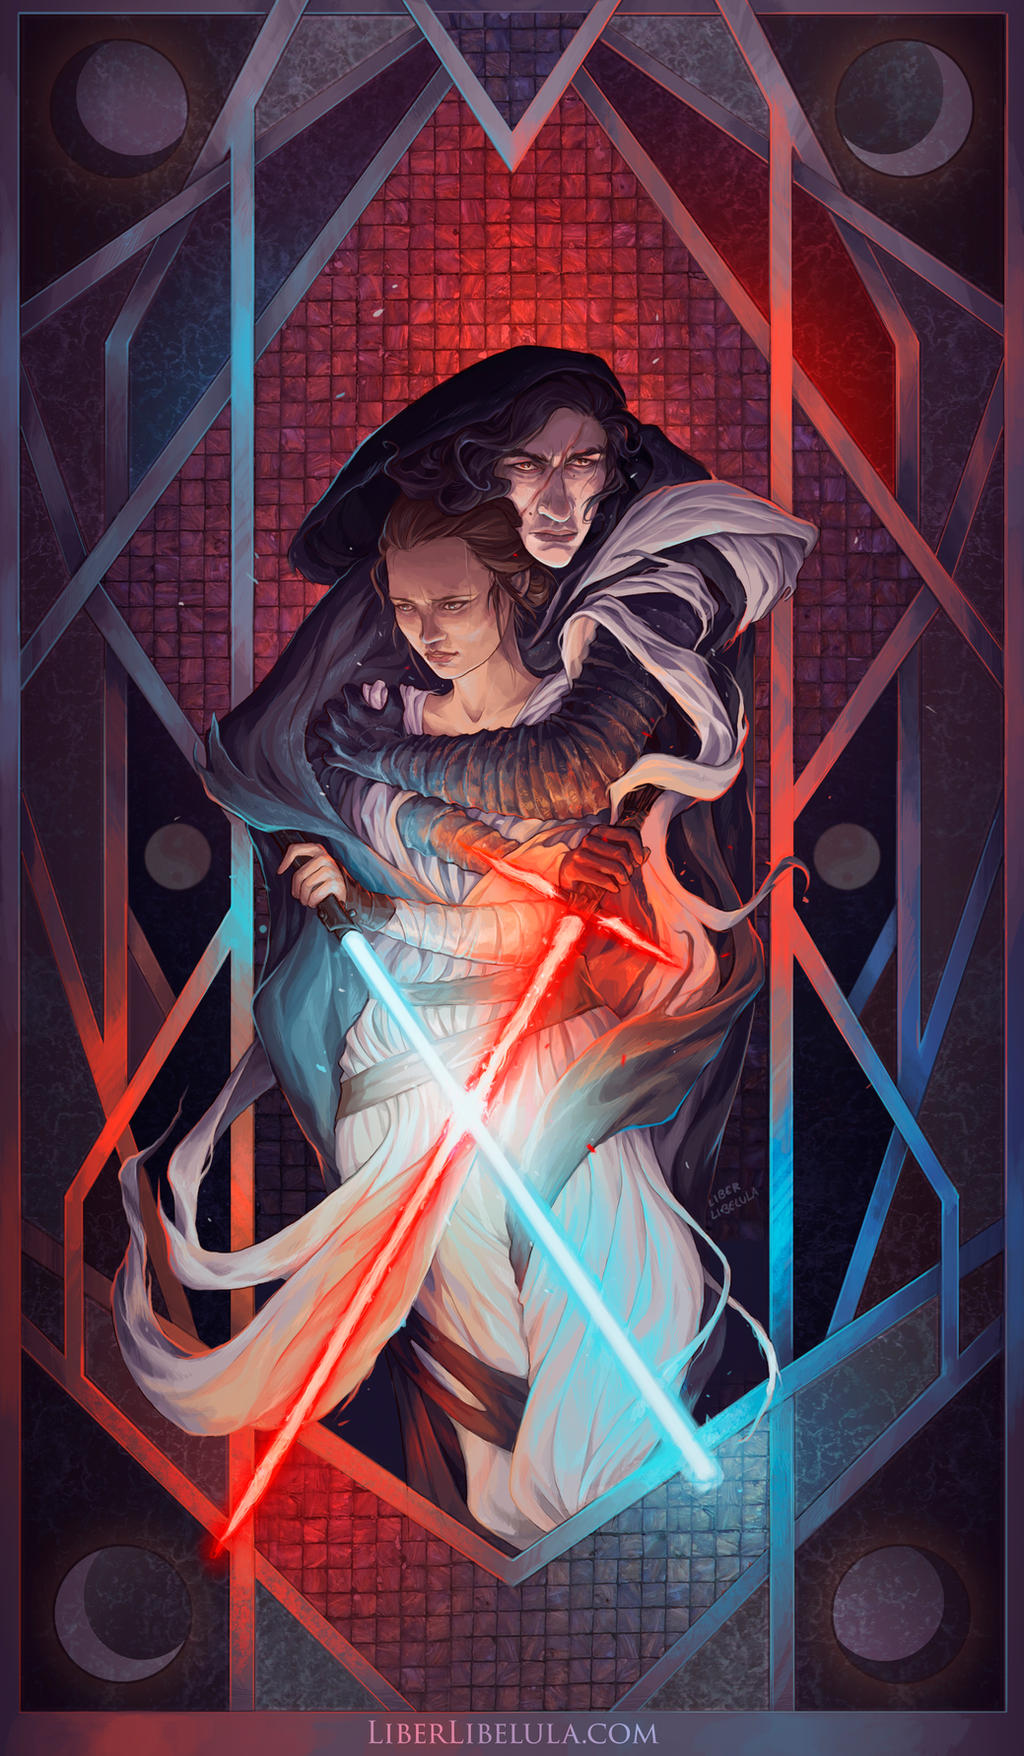 The Balance of the Force - Reylo by LiberLibelula